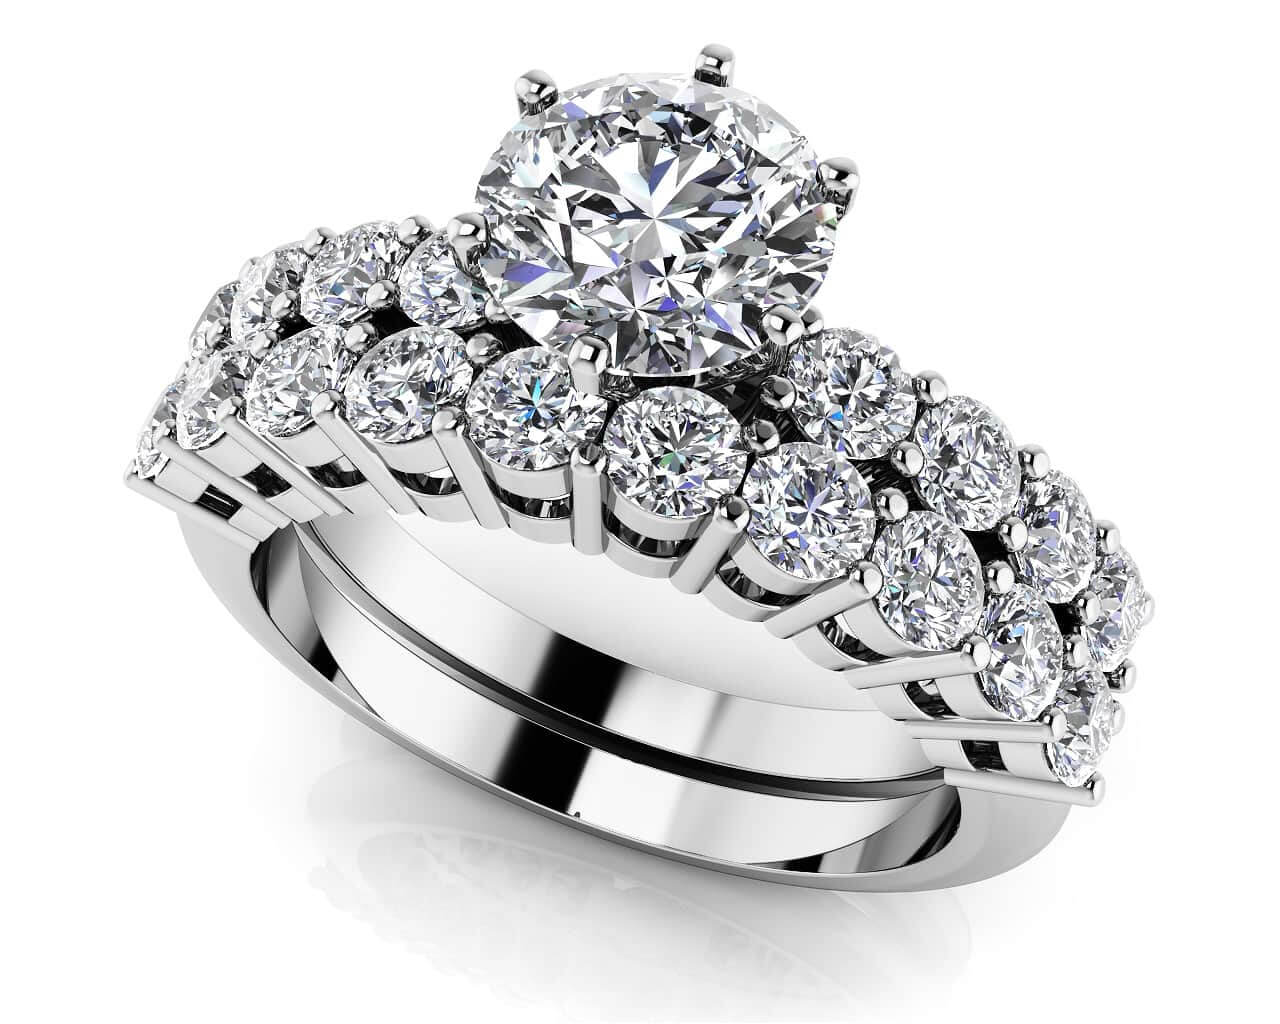 jewelry collection - Diamond Wedding Ring Sets